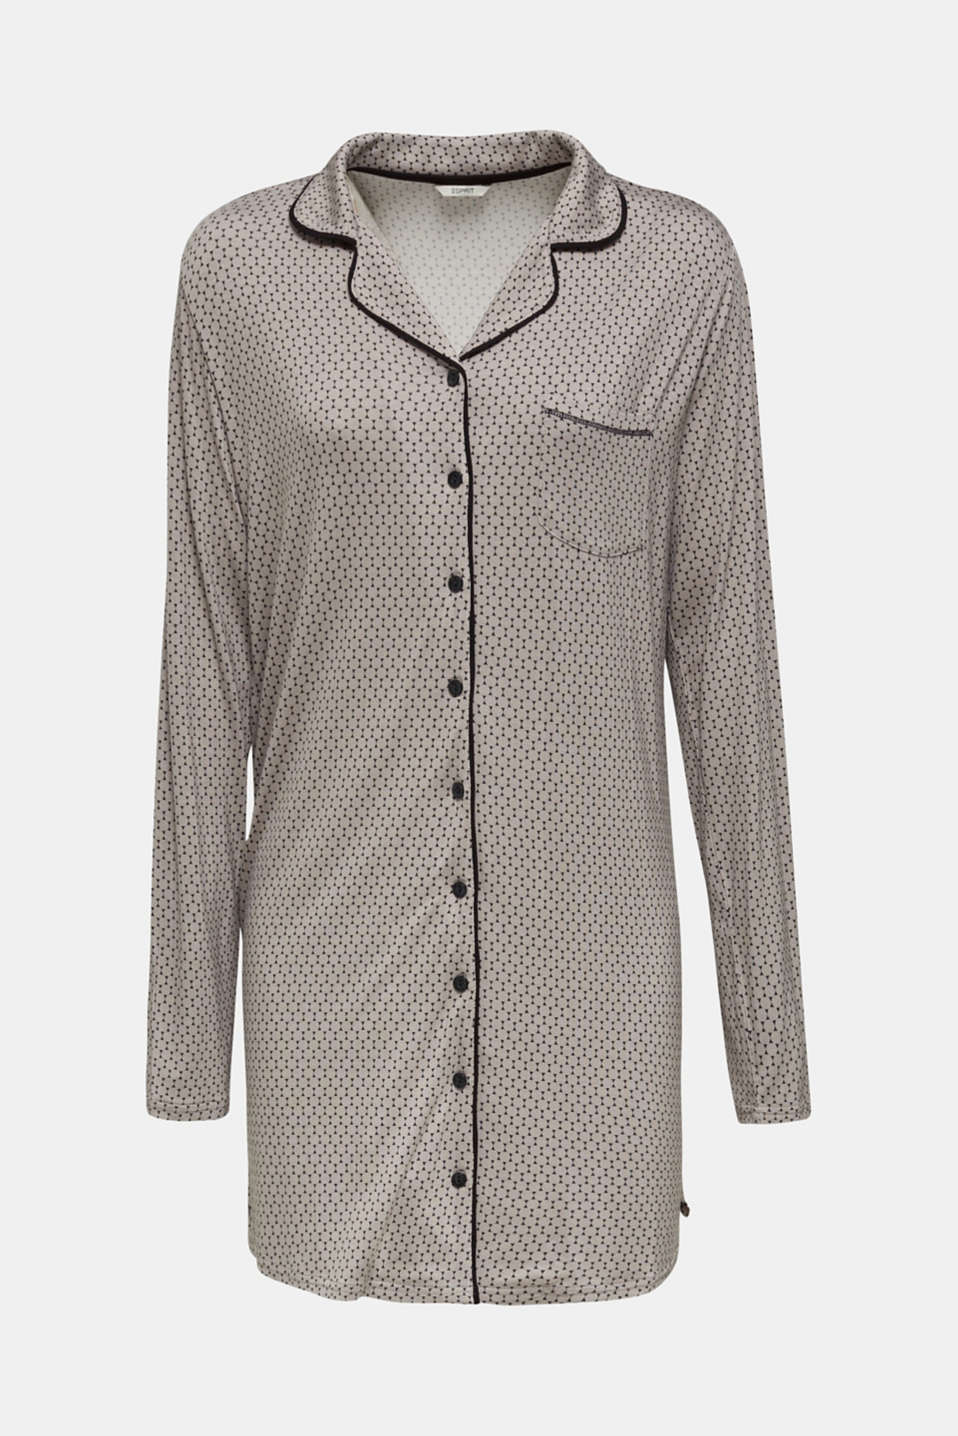 Stretch jersey nightshirt with a graphic print, LIGHT TAUPE, detail image number 4